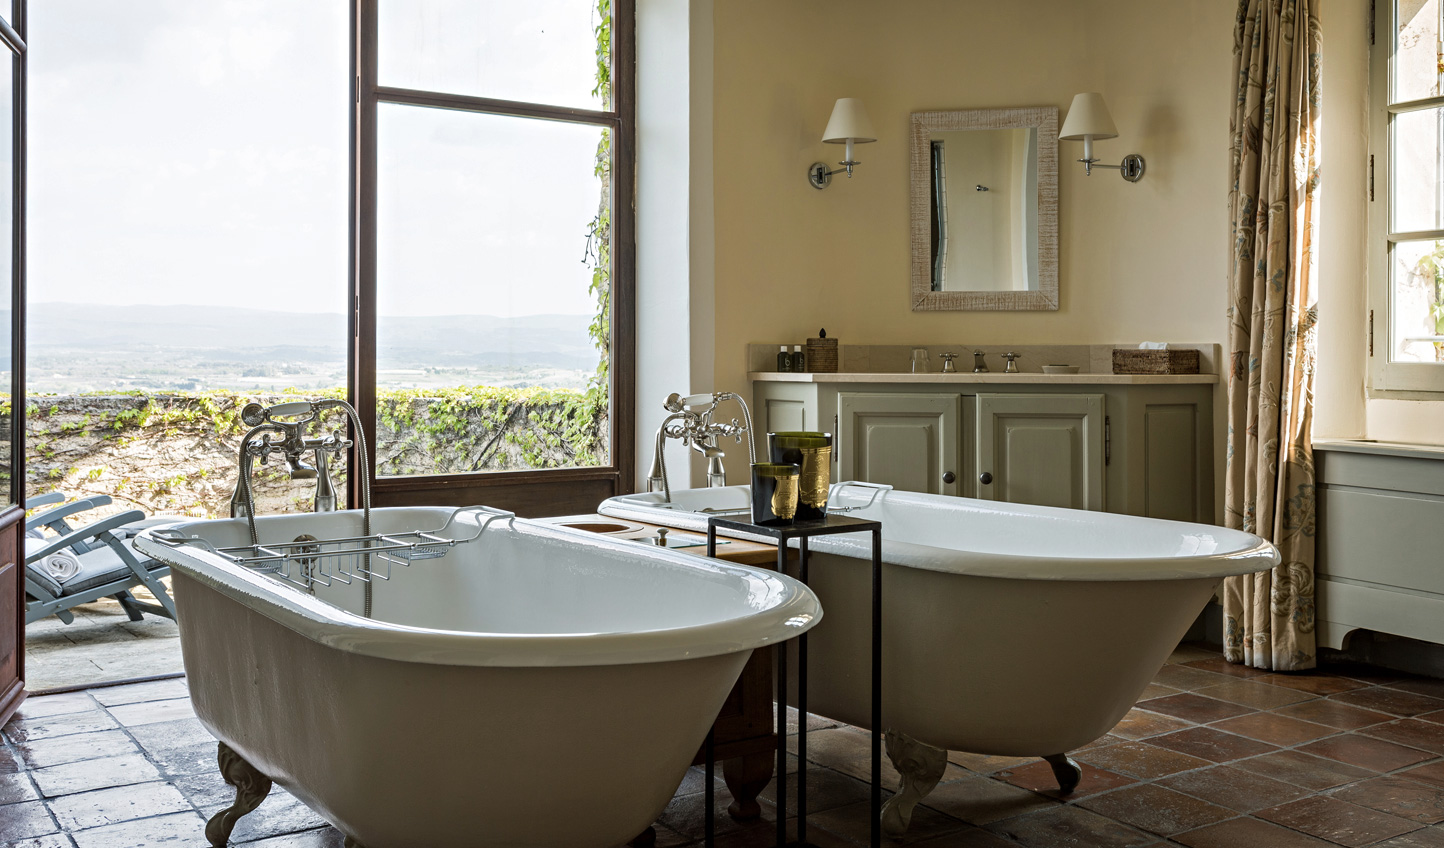 Slip into twin soaking bathtubs and gaze out over the view